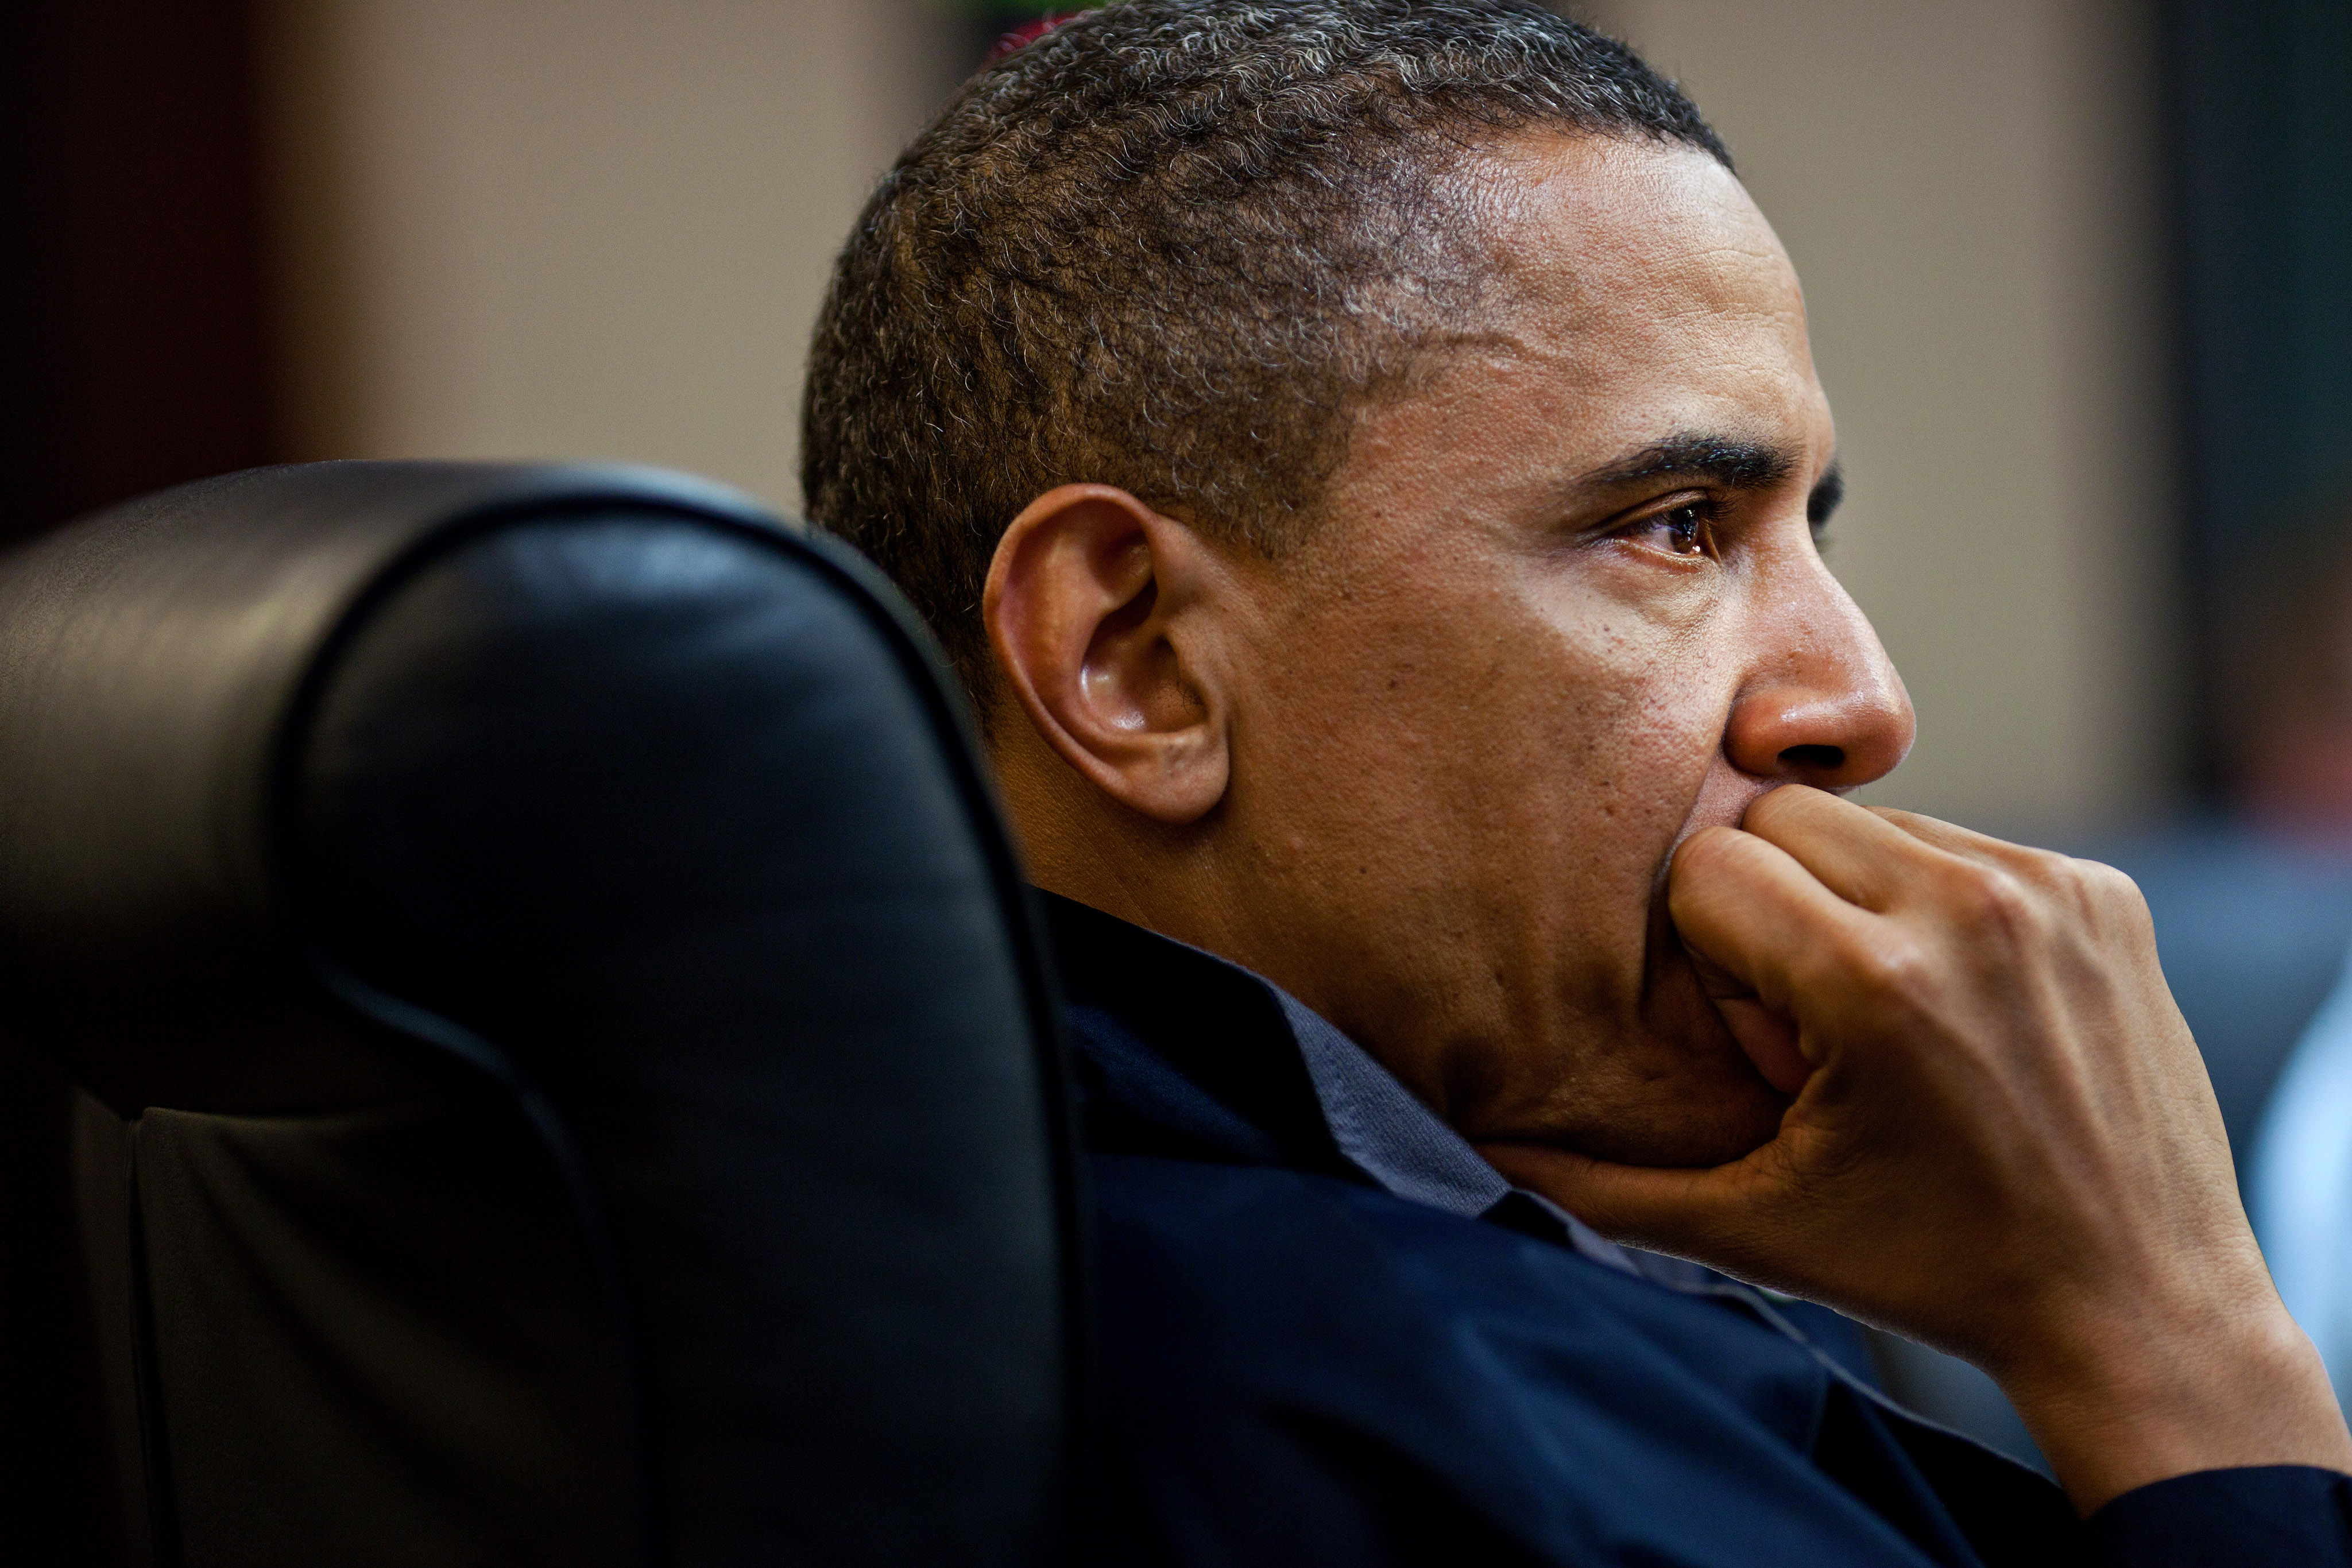 President Obama looking tense and pensive